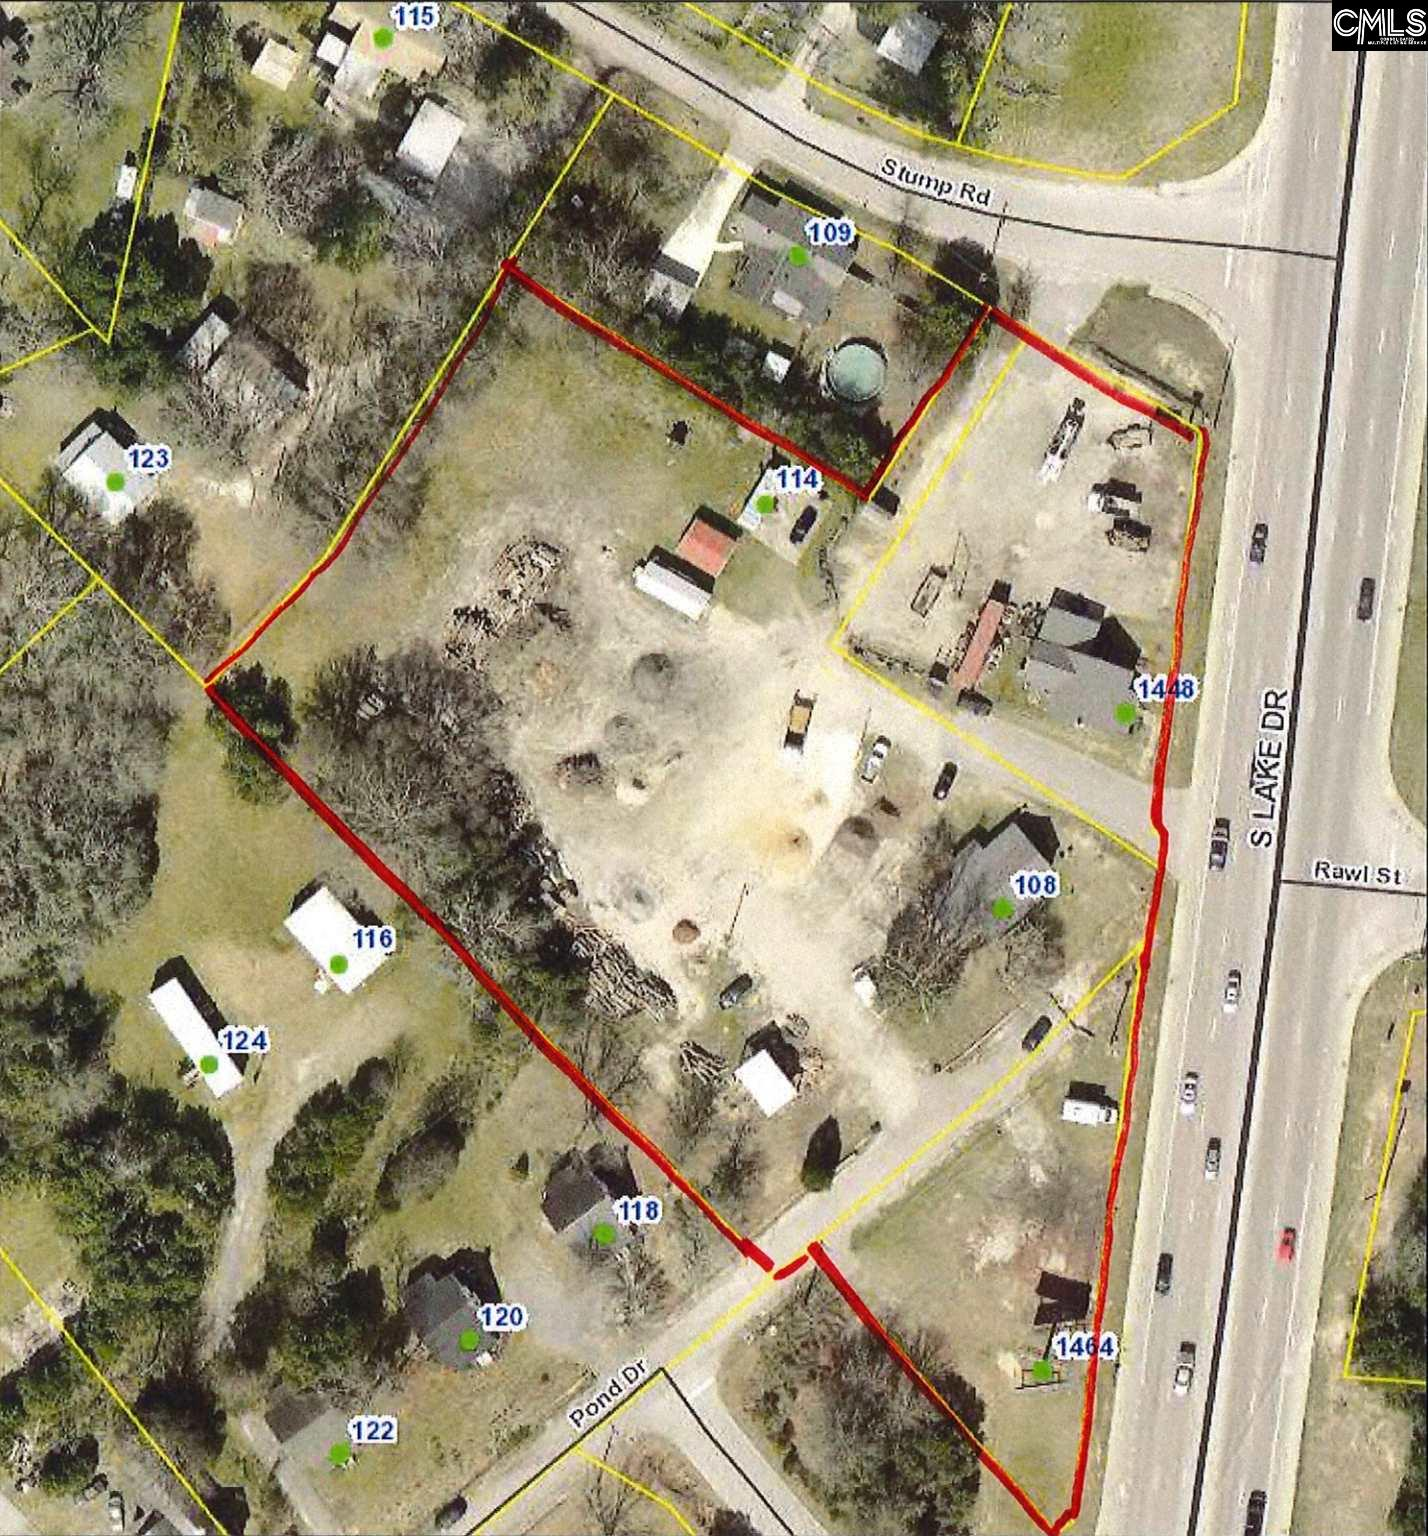 """Great Commercial development site! Consists of three TMS parcels (TMS: 006524-07-006, 006524-07-023, and 006524-07-020) with a total of +/- 2.98 acres and +/- 477' road frontage. Two houses on the property being sold """"as is"""". Owner will consider owner financing."""